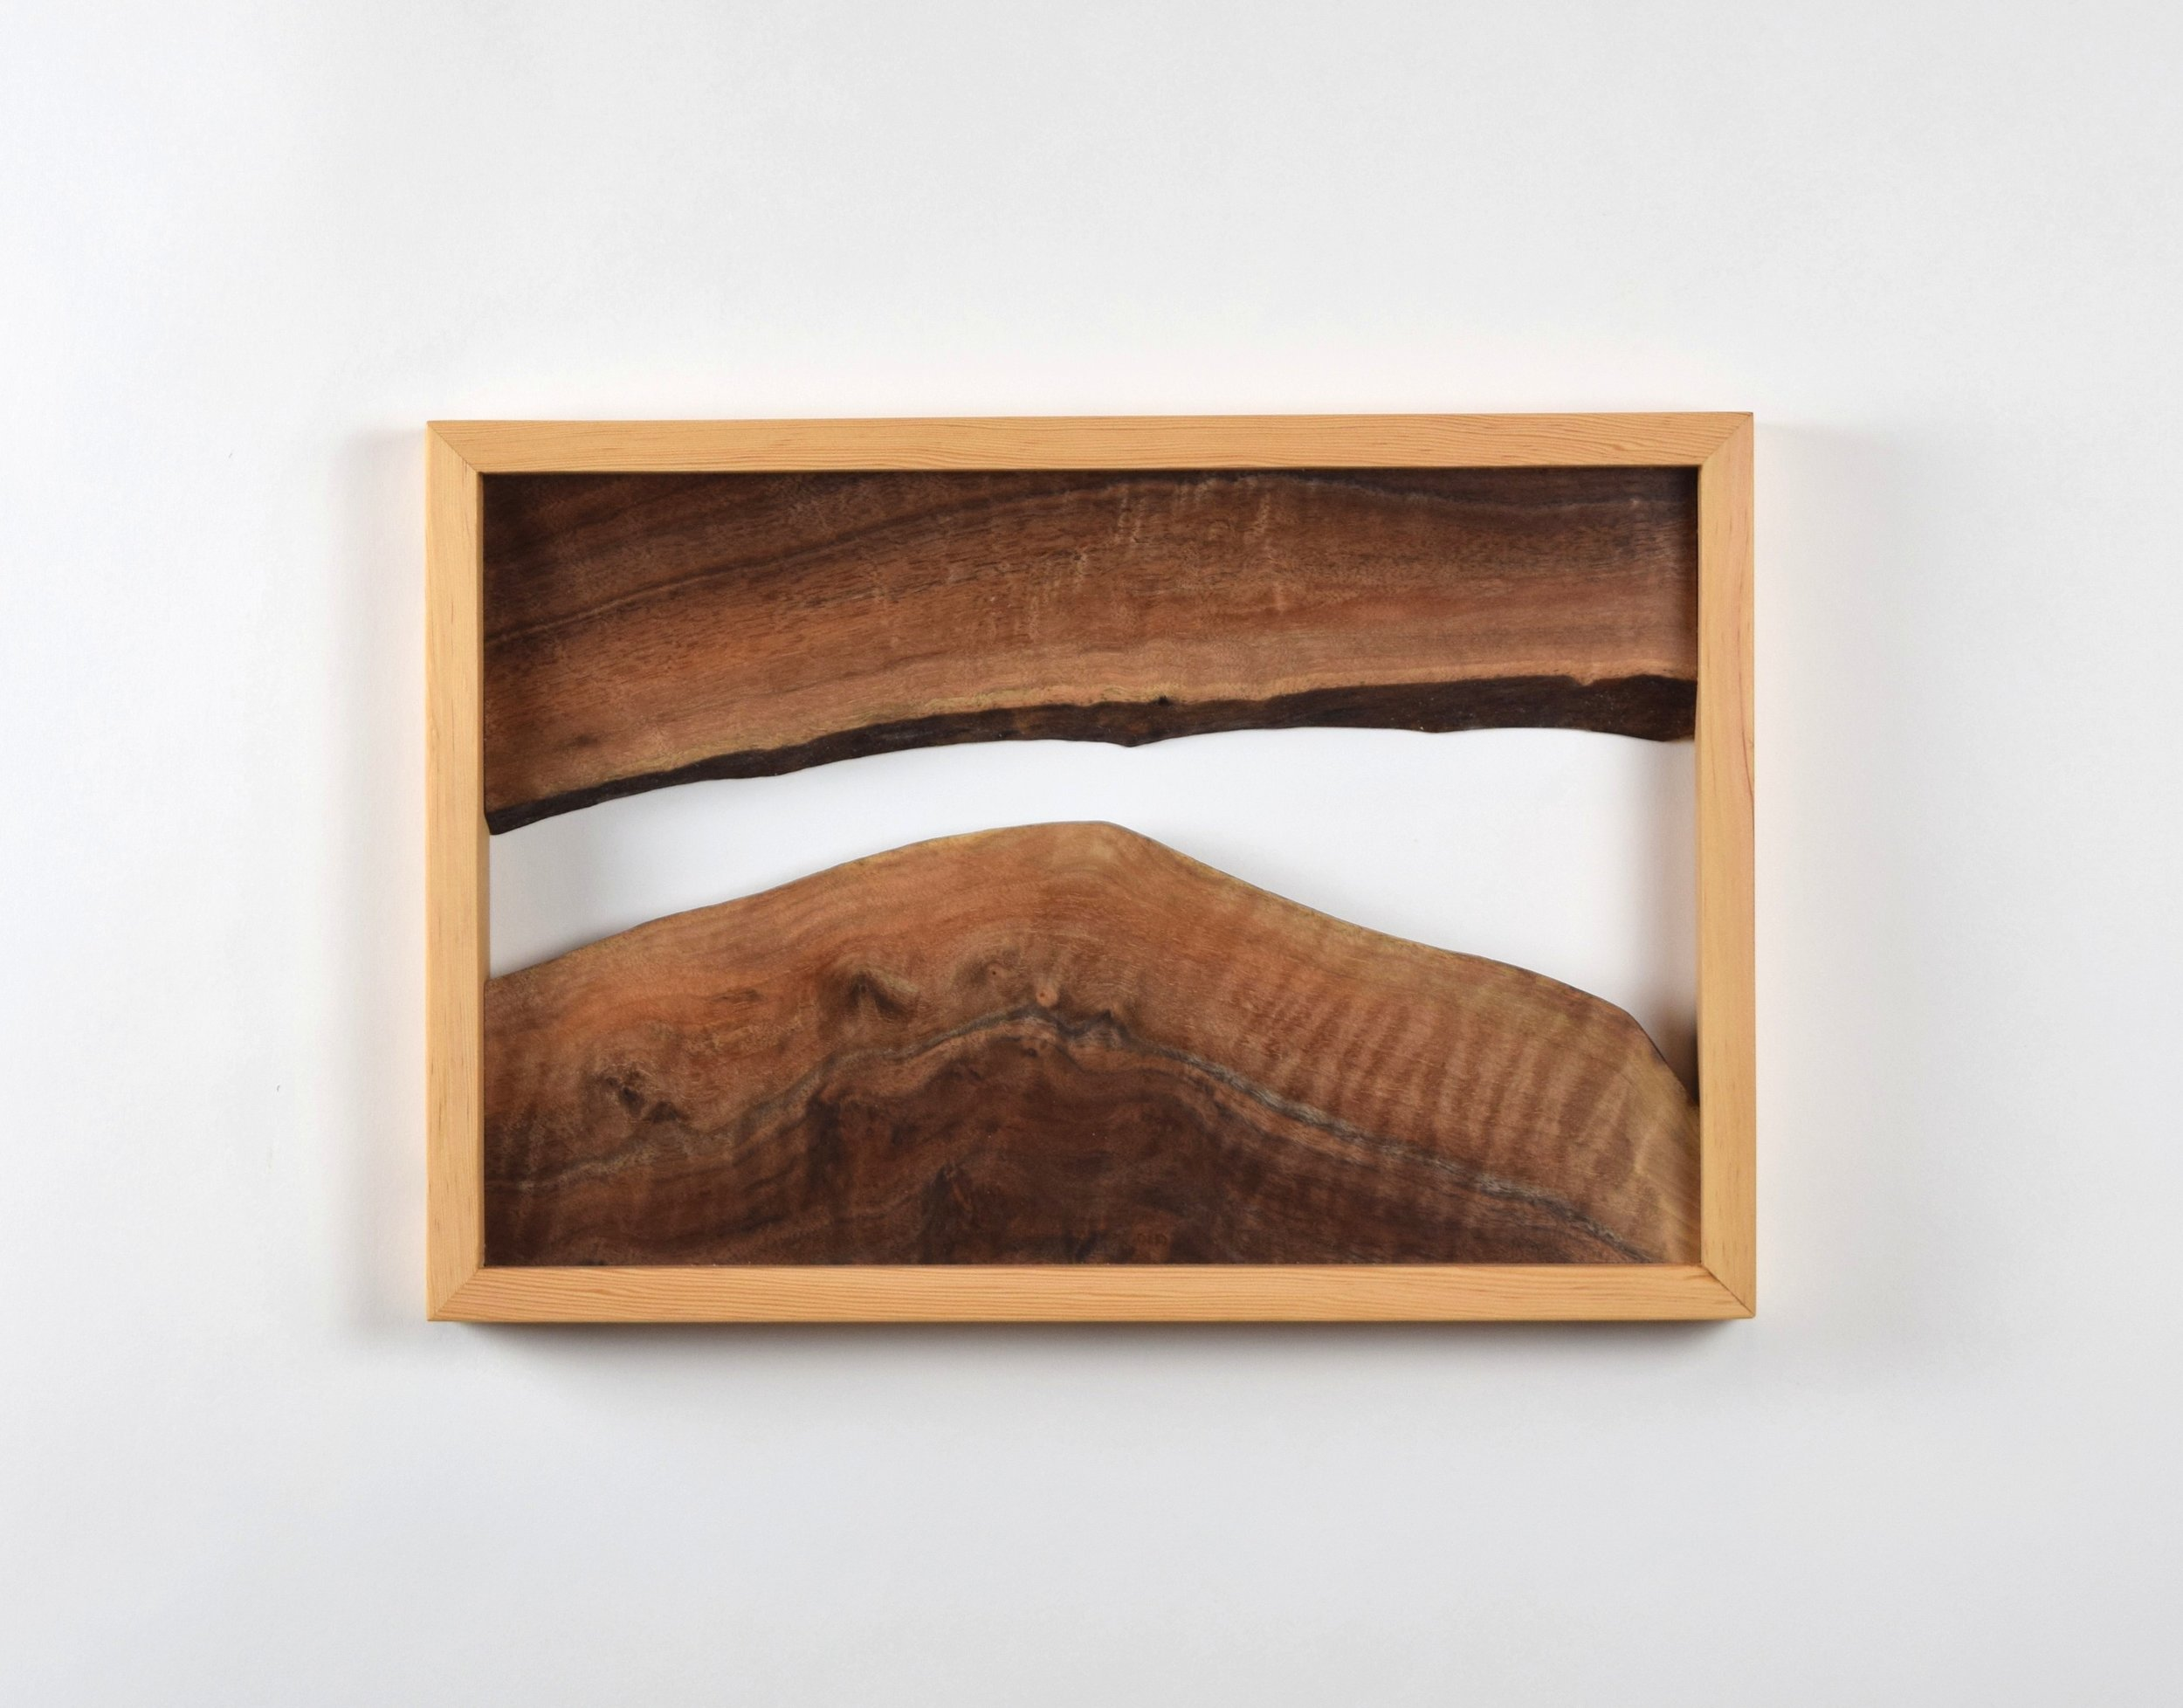 Live-edge Sculpture Series - Reusing the offcuts.